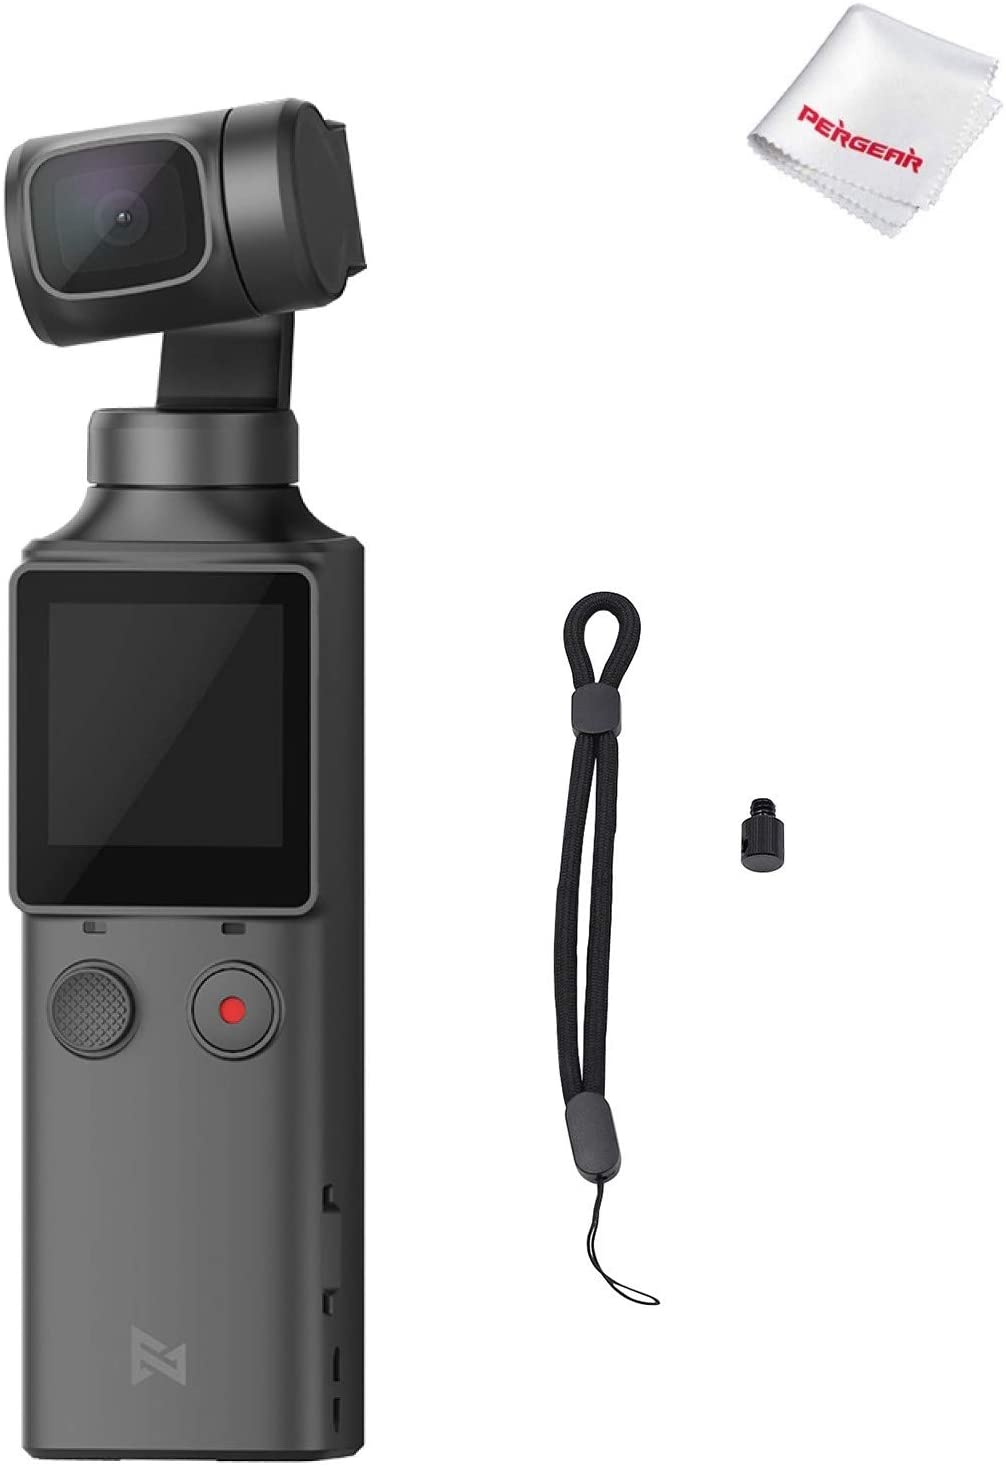 FIMI PALM 3 Axis Gimbal Stabilizer with 4K Smart Camera, 128° Ultra Wide Angle Lens, 120g, Wi-Fi & Bluetooth Connection, Built-in Microphone and external MIC Supported